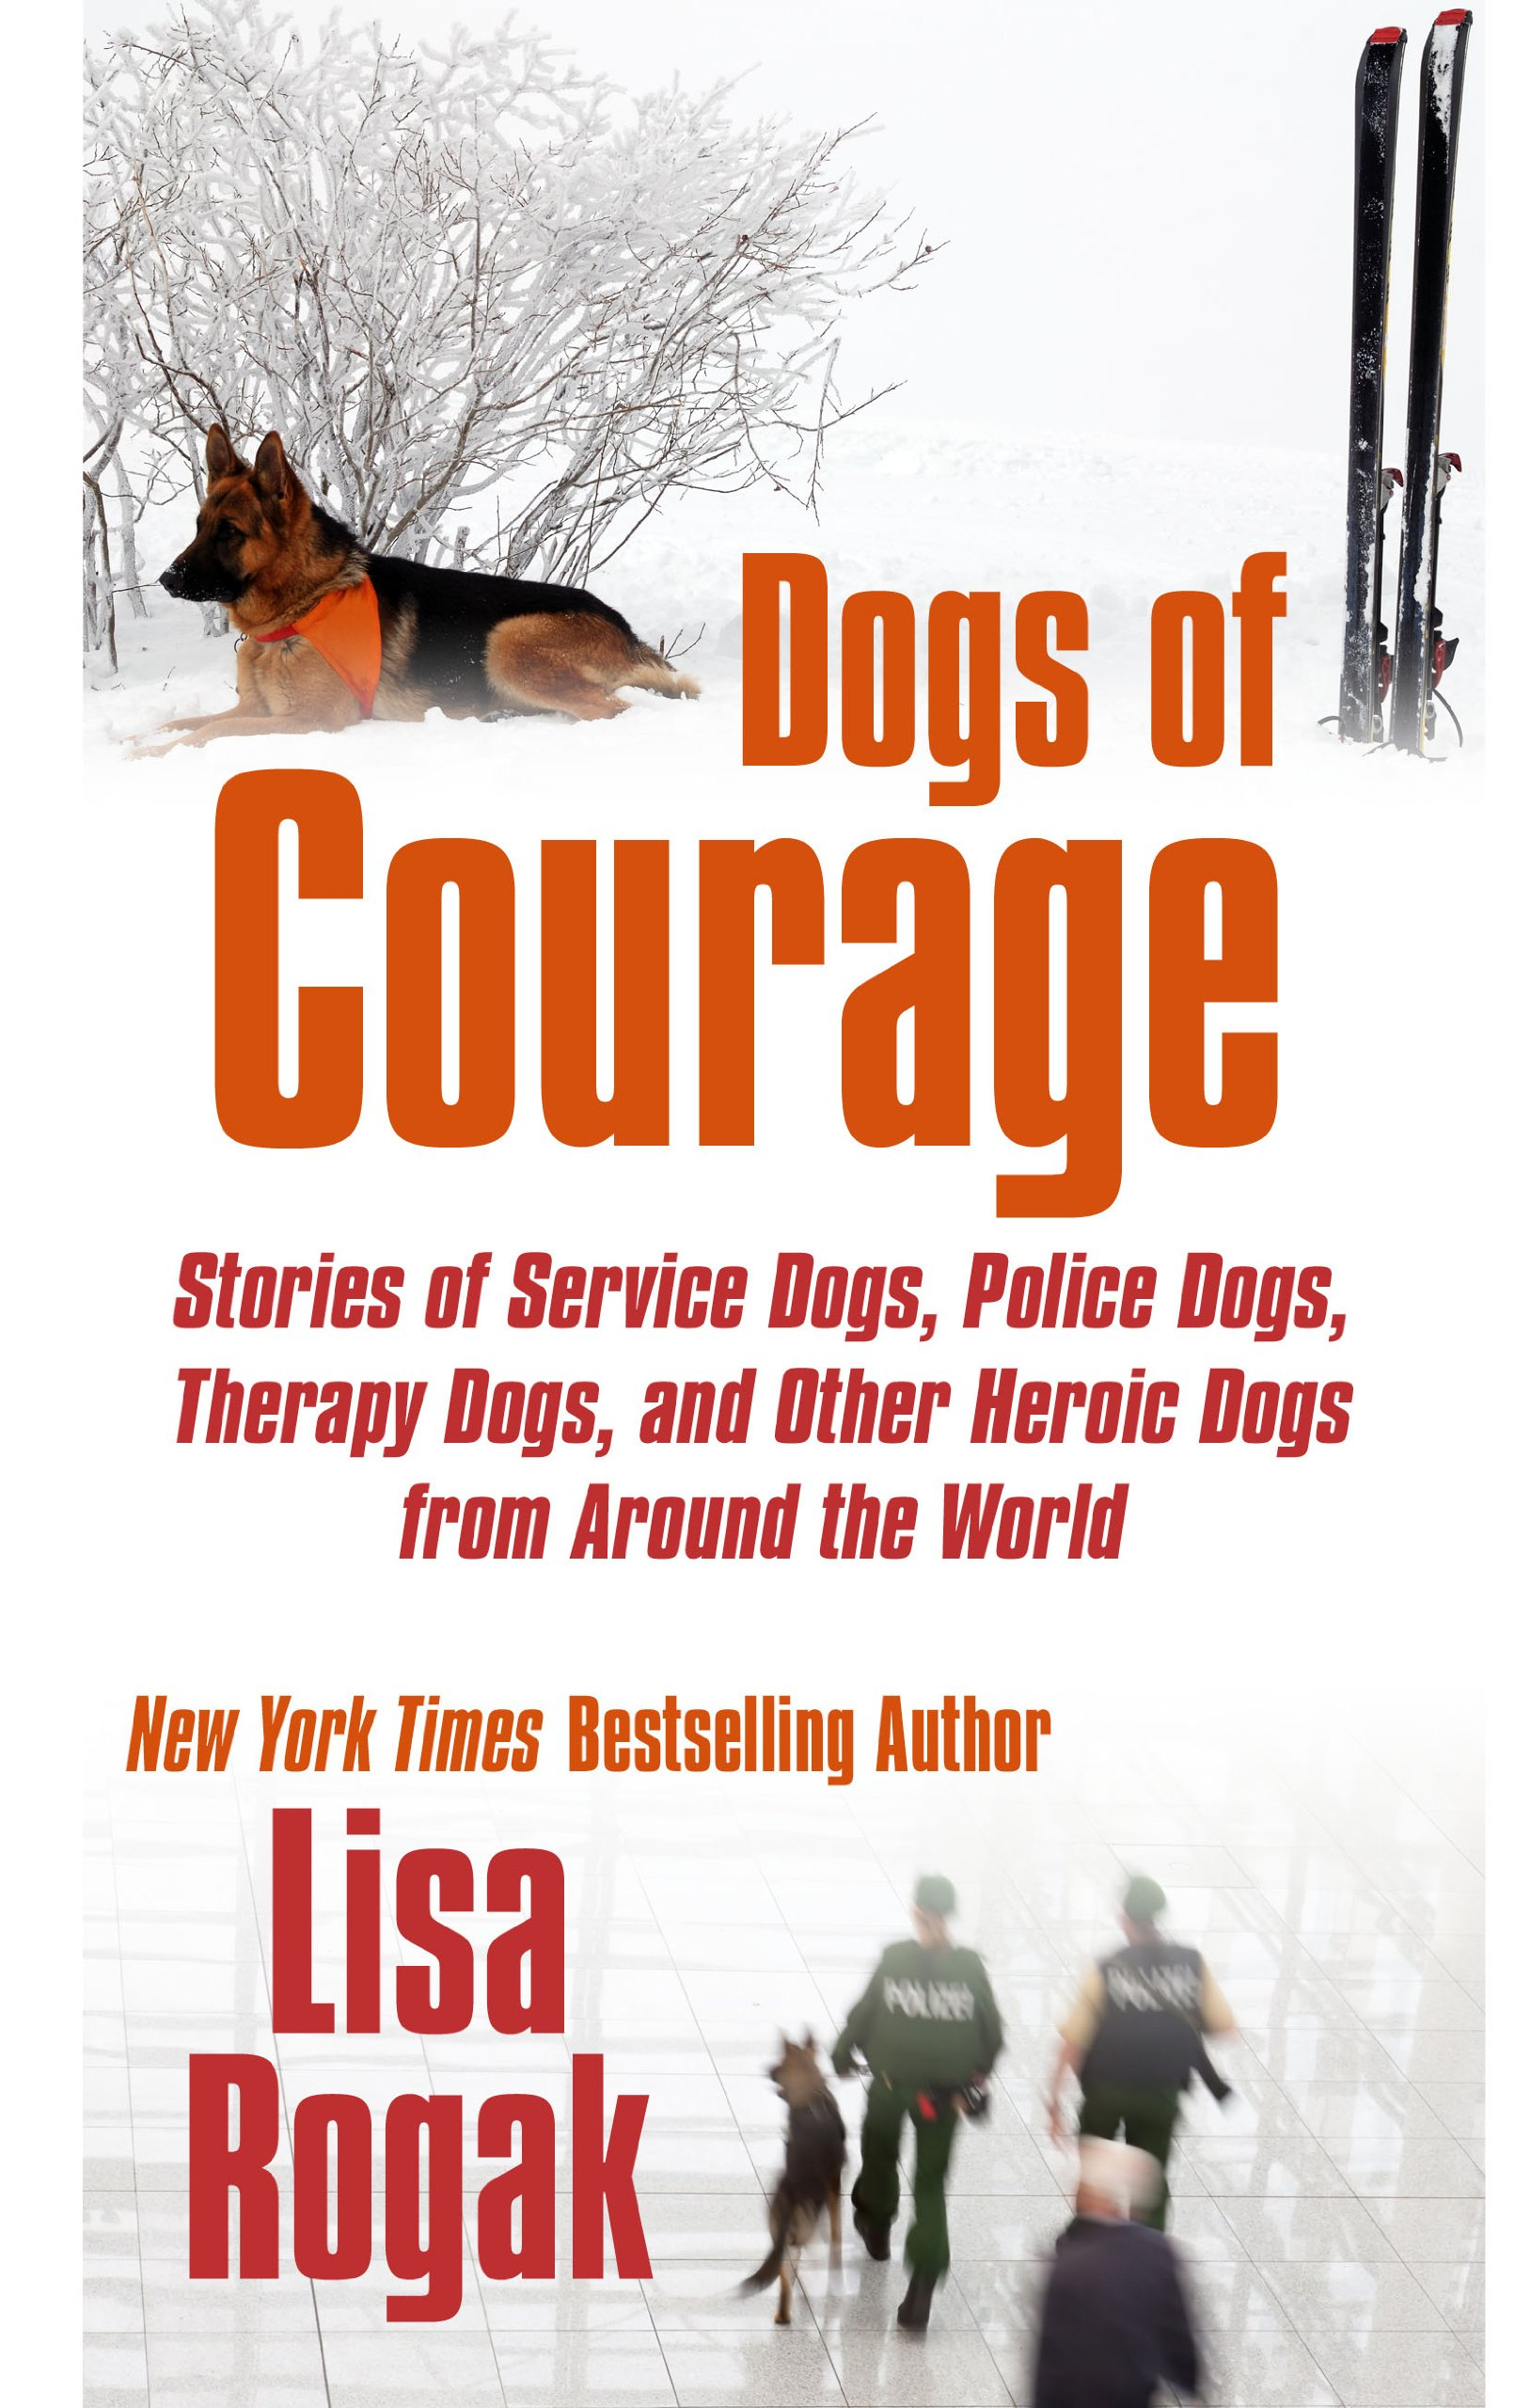 Dogs of Courage: Stories of Service Dogs, Police Dogs, Therapy Dogs, and Other Heroic Dogs from Around the World (Thorndike Press Large Print Inspirational Series) pdf